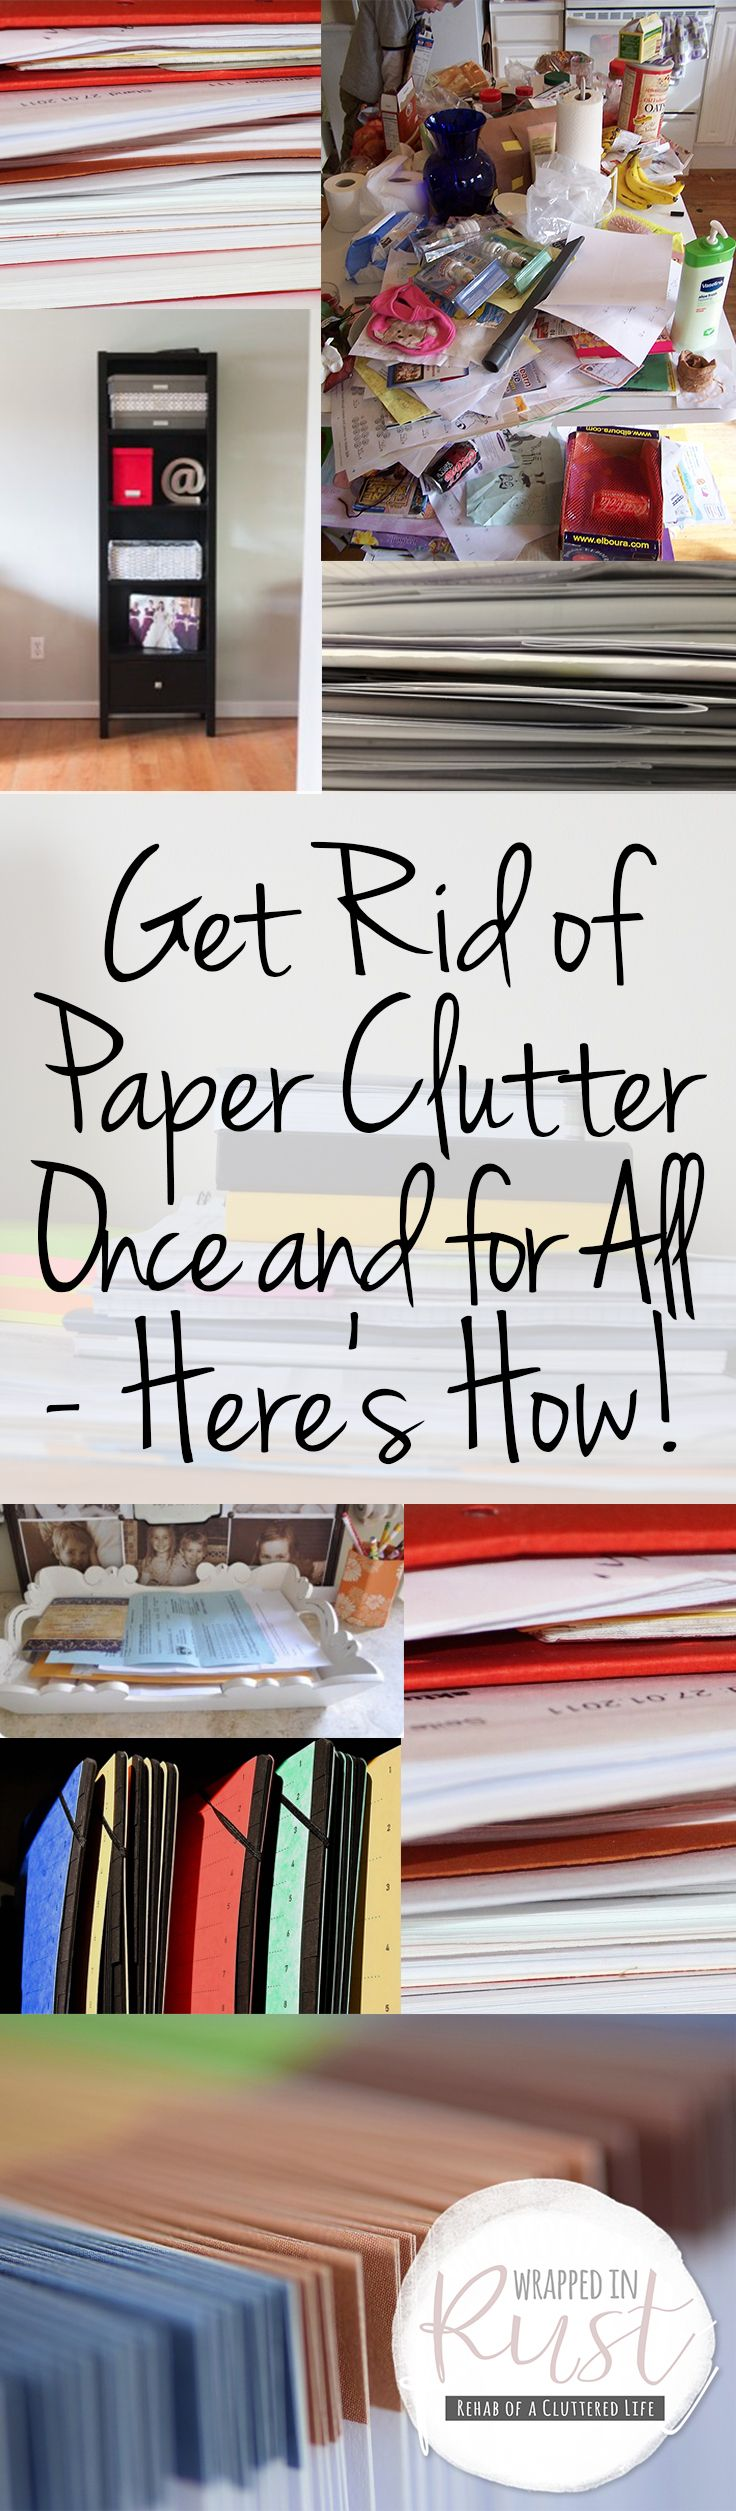 PIN Get Rid of Paper Clutter Once and for All -- Here's How!